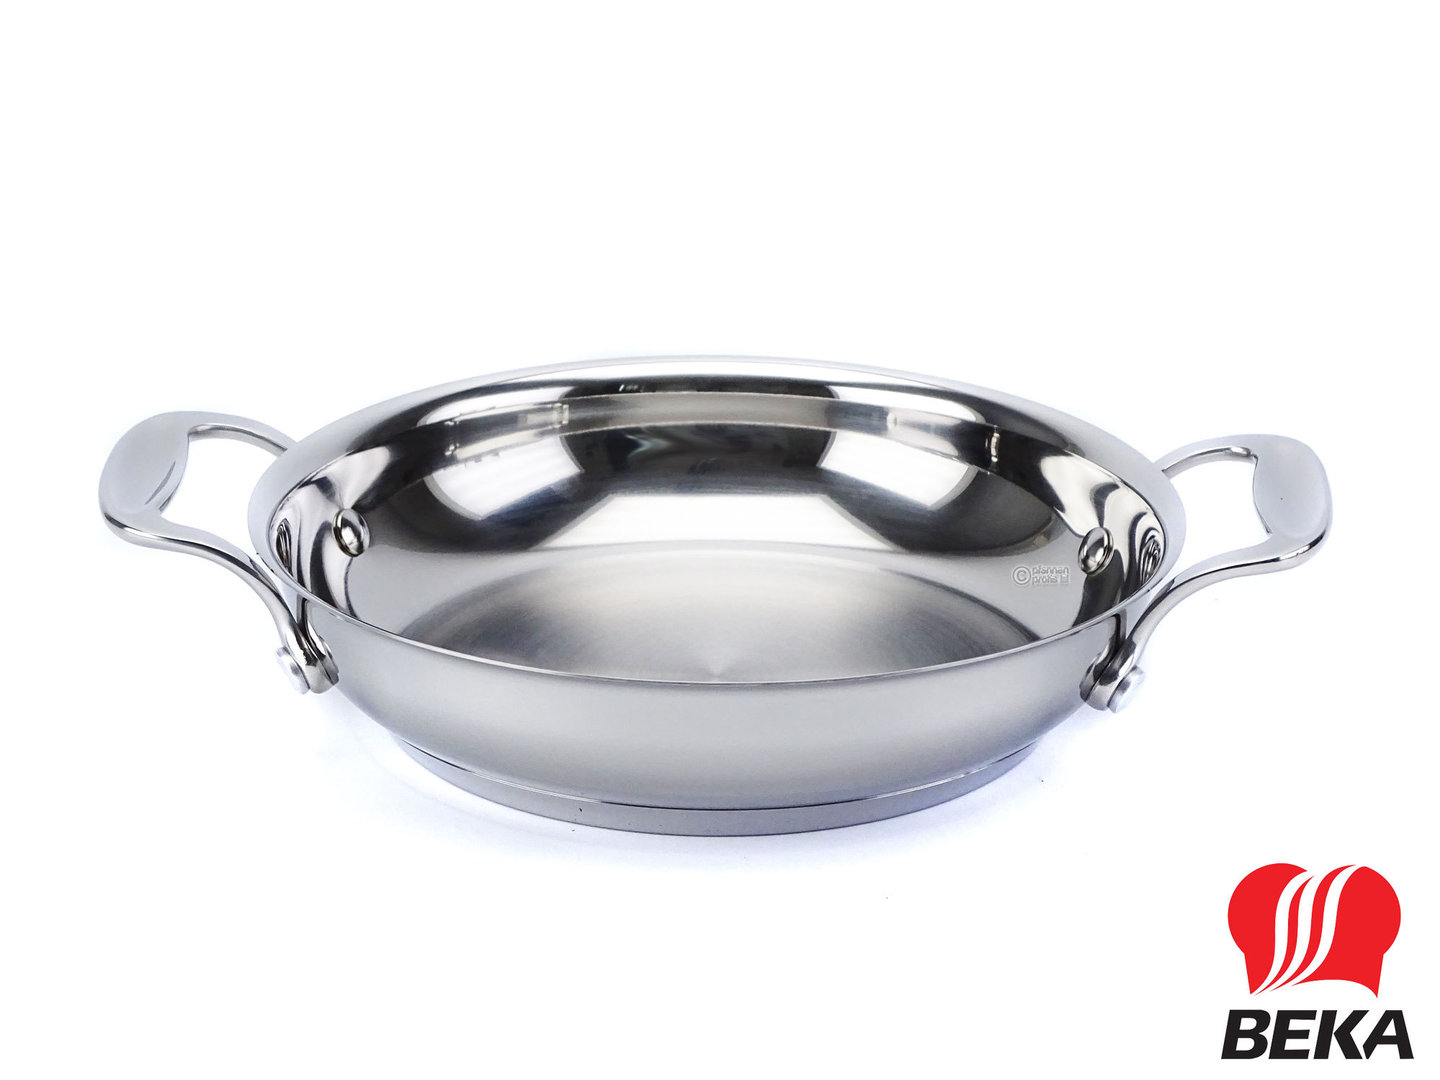 BEKA stainless steel frypan CHEF 20 cm with side handles induction